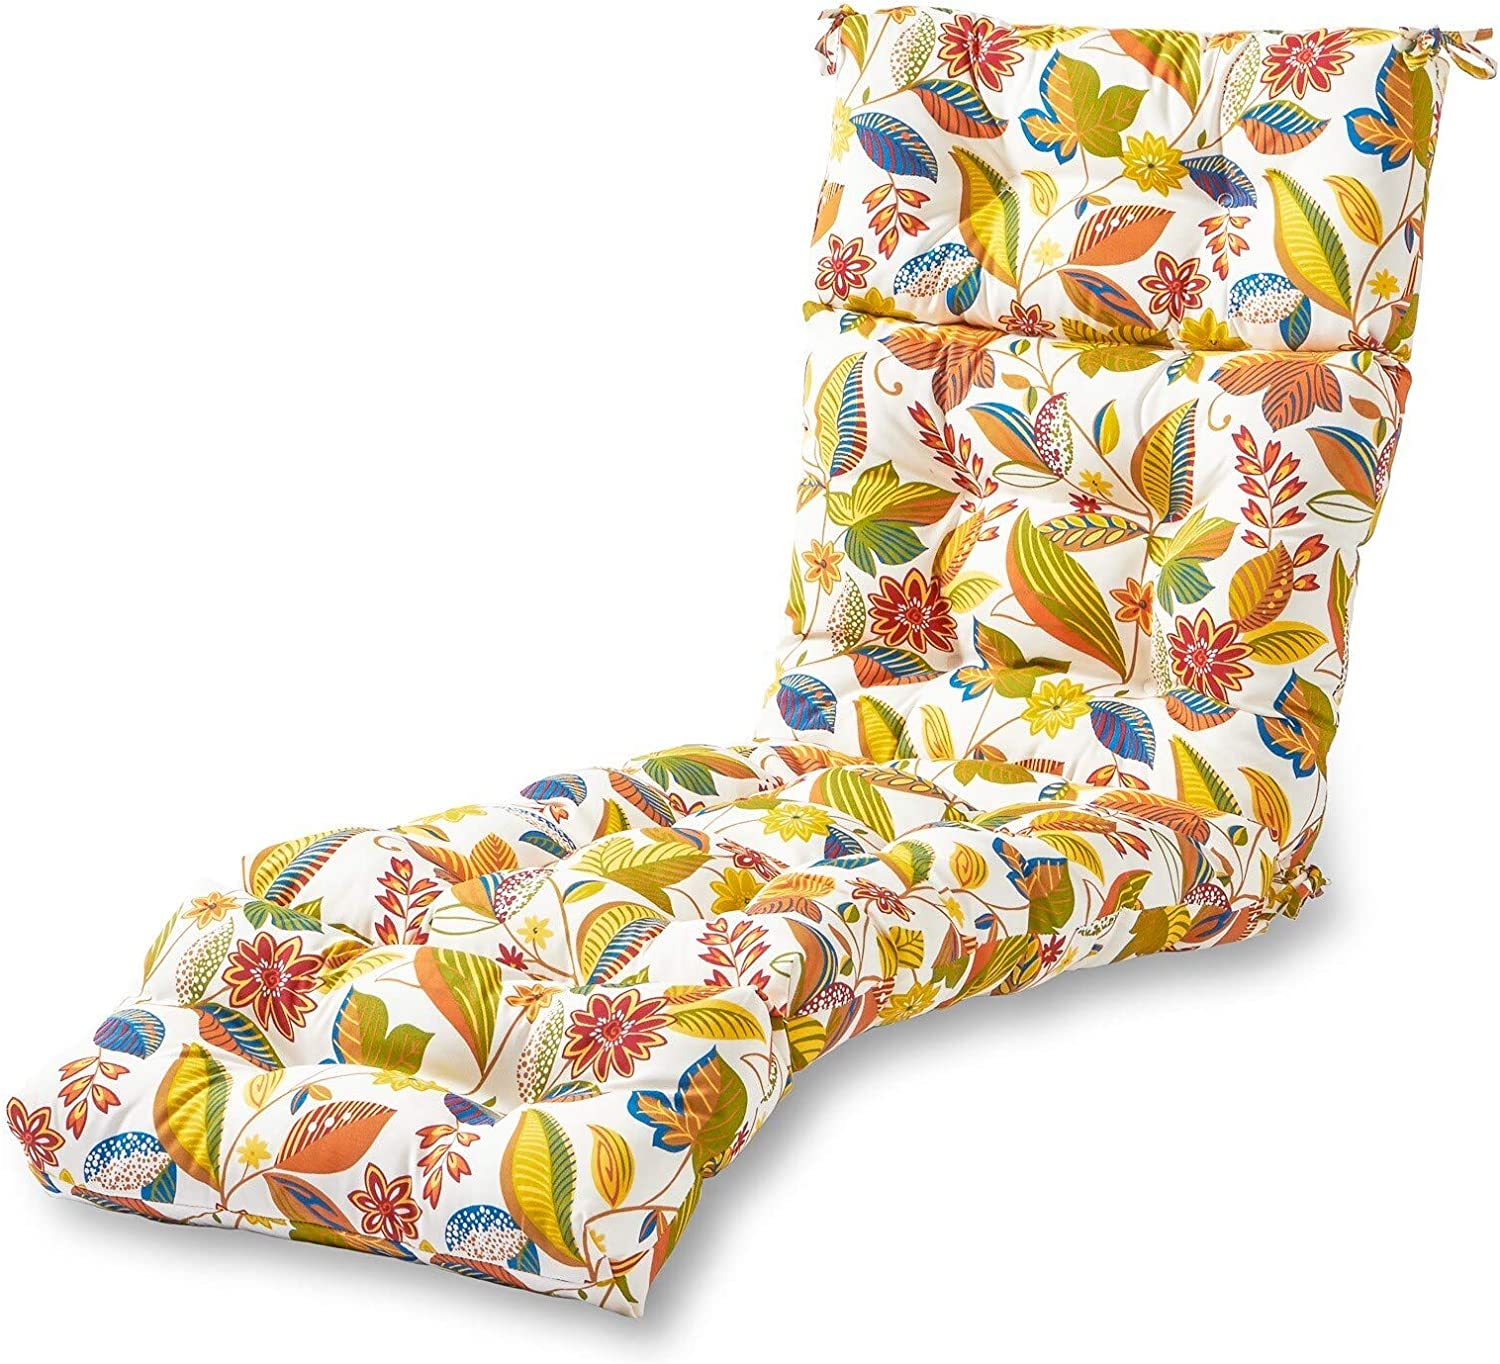 Havenside Home Dana Point 72-inch Outdoor Floral Chaise Lounger Cushion